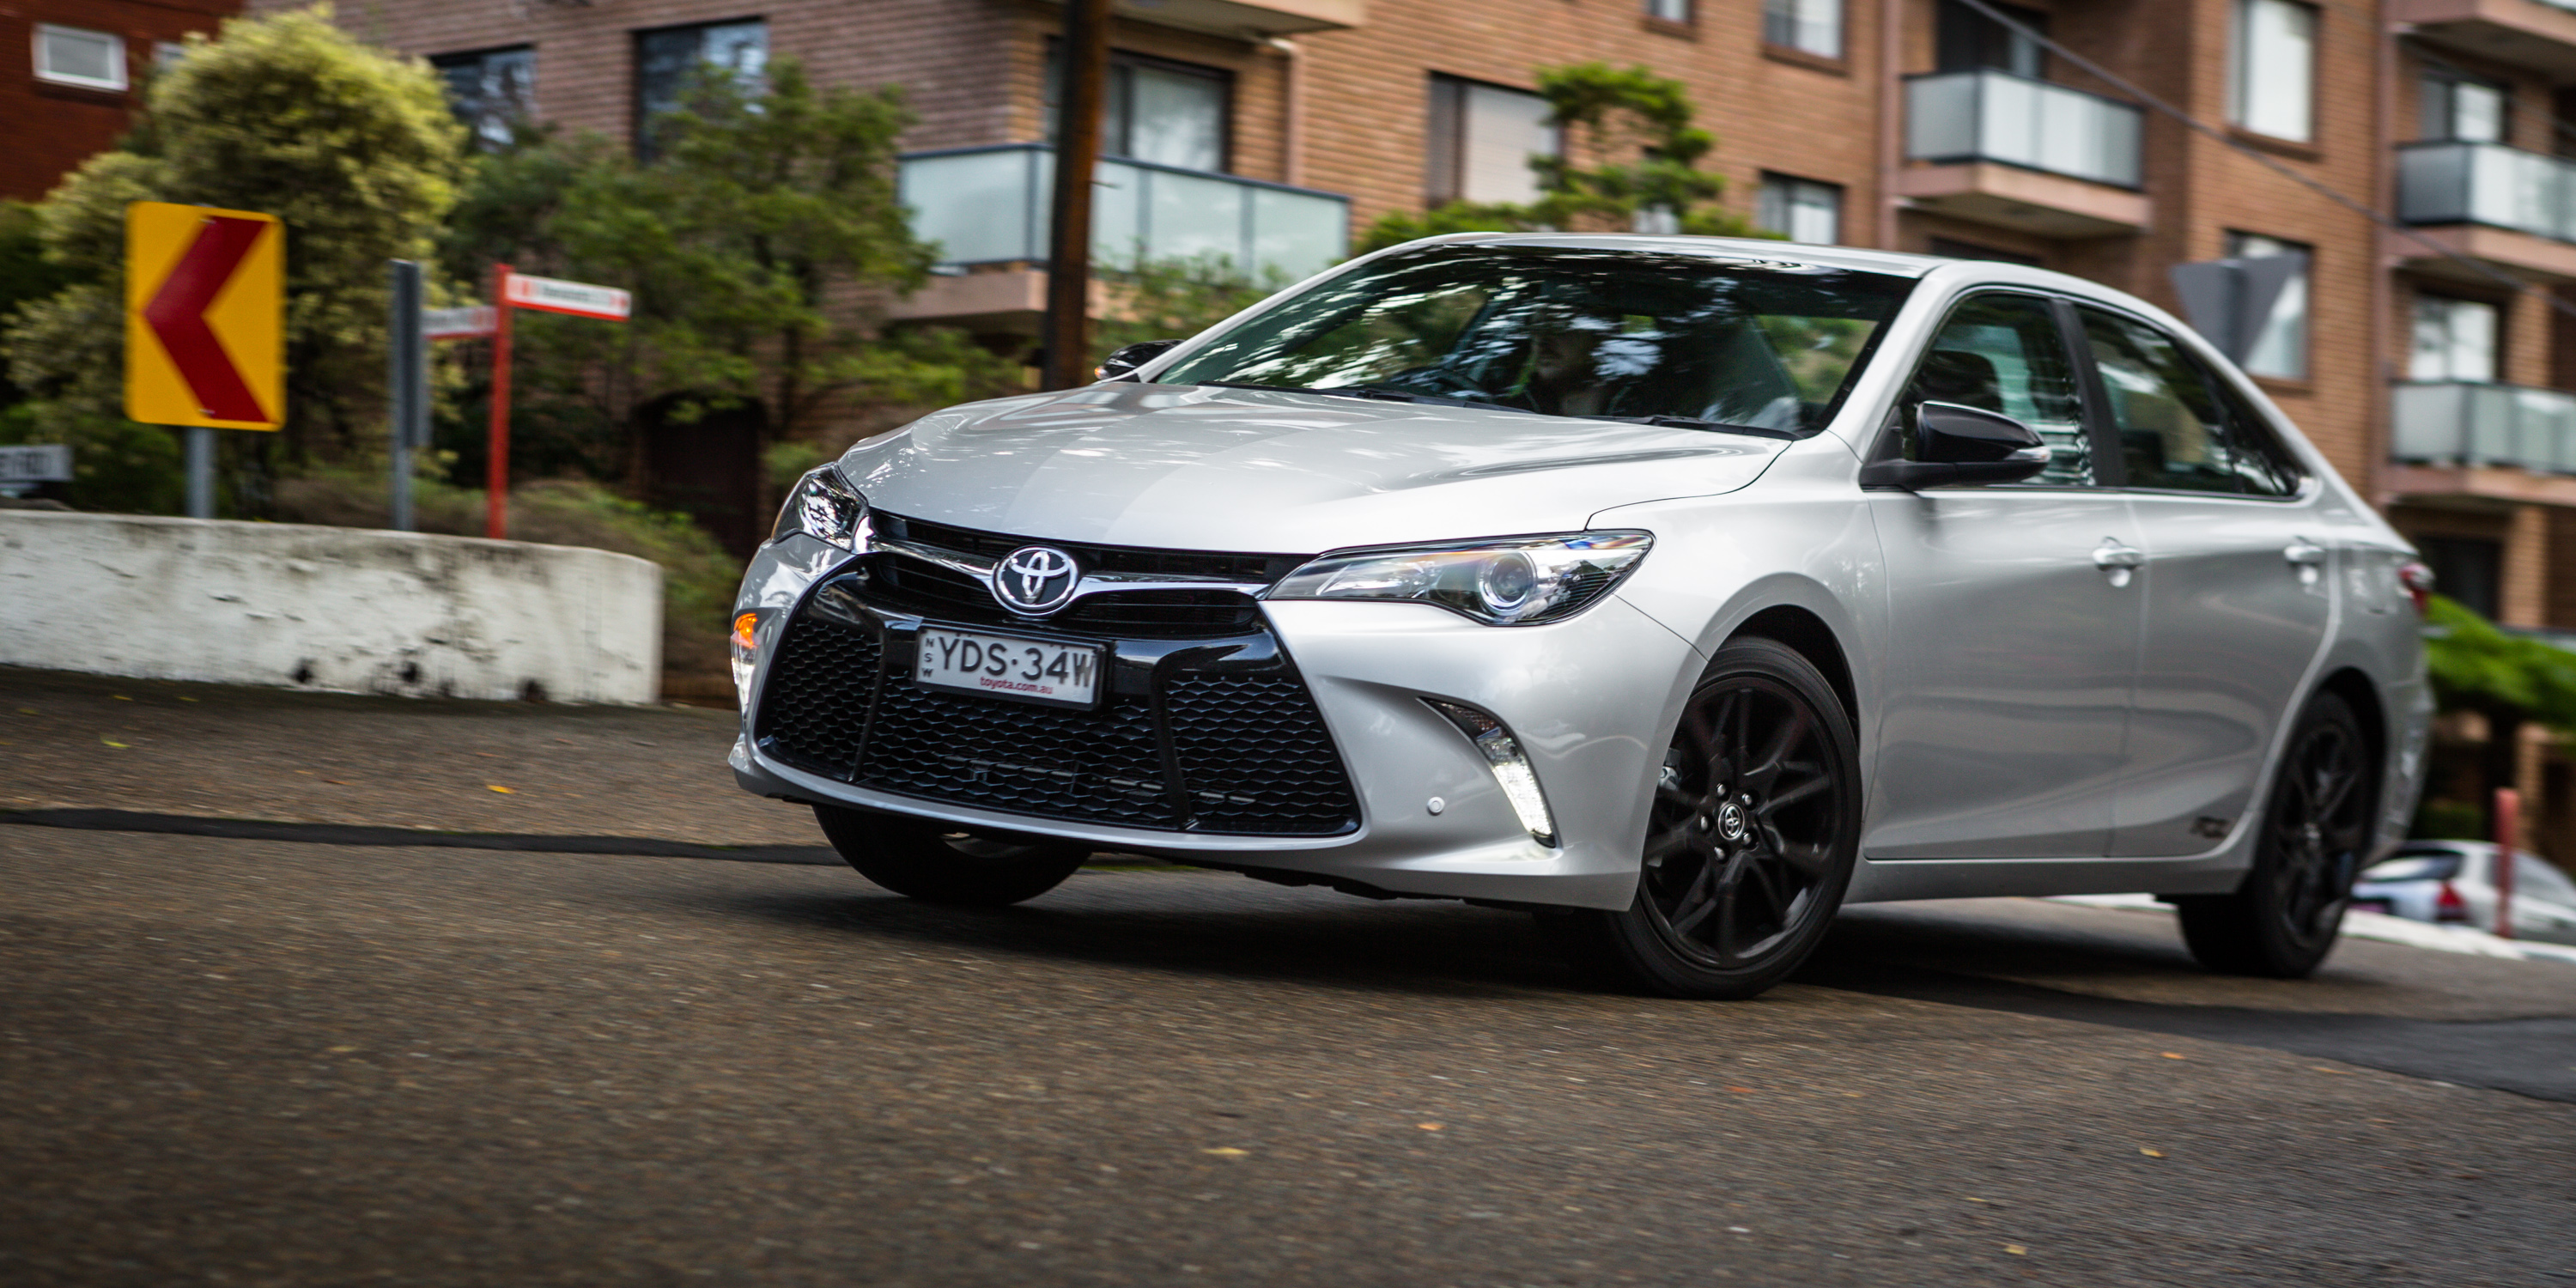 all new camry specs yaris trd modifikasi 2016 toyota rz review - photos | caradvice